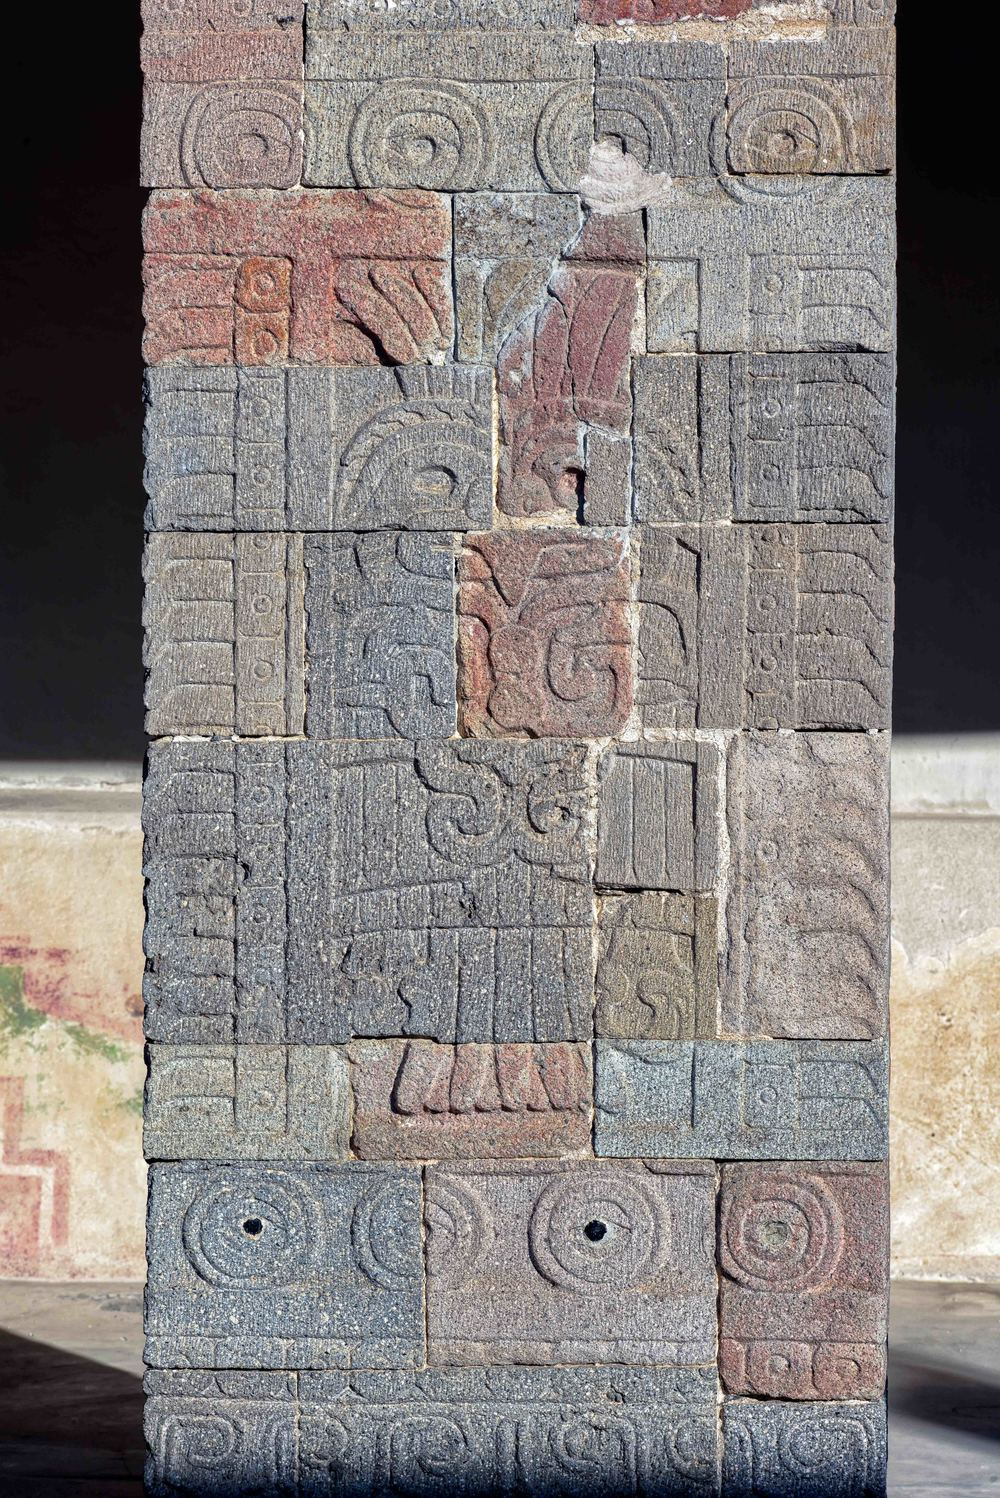 The stone columns are profusely carved with representations of quetzals ad owls, where painted and had obsidian incrustations. Here an owl is shown.